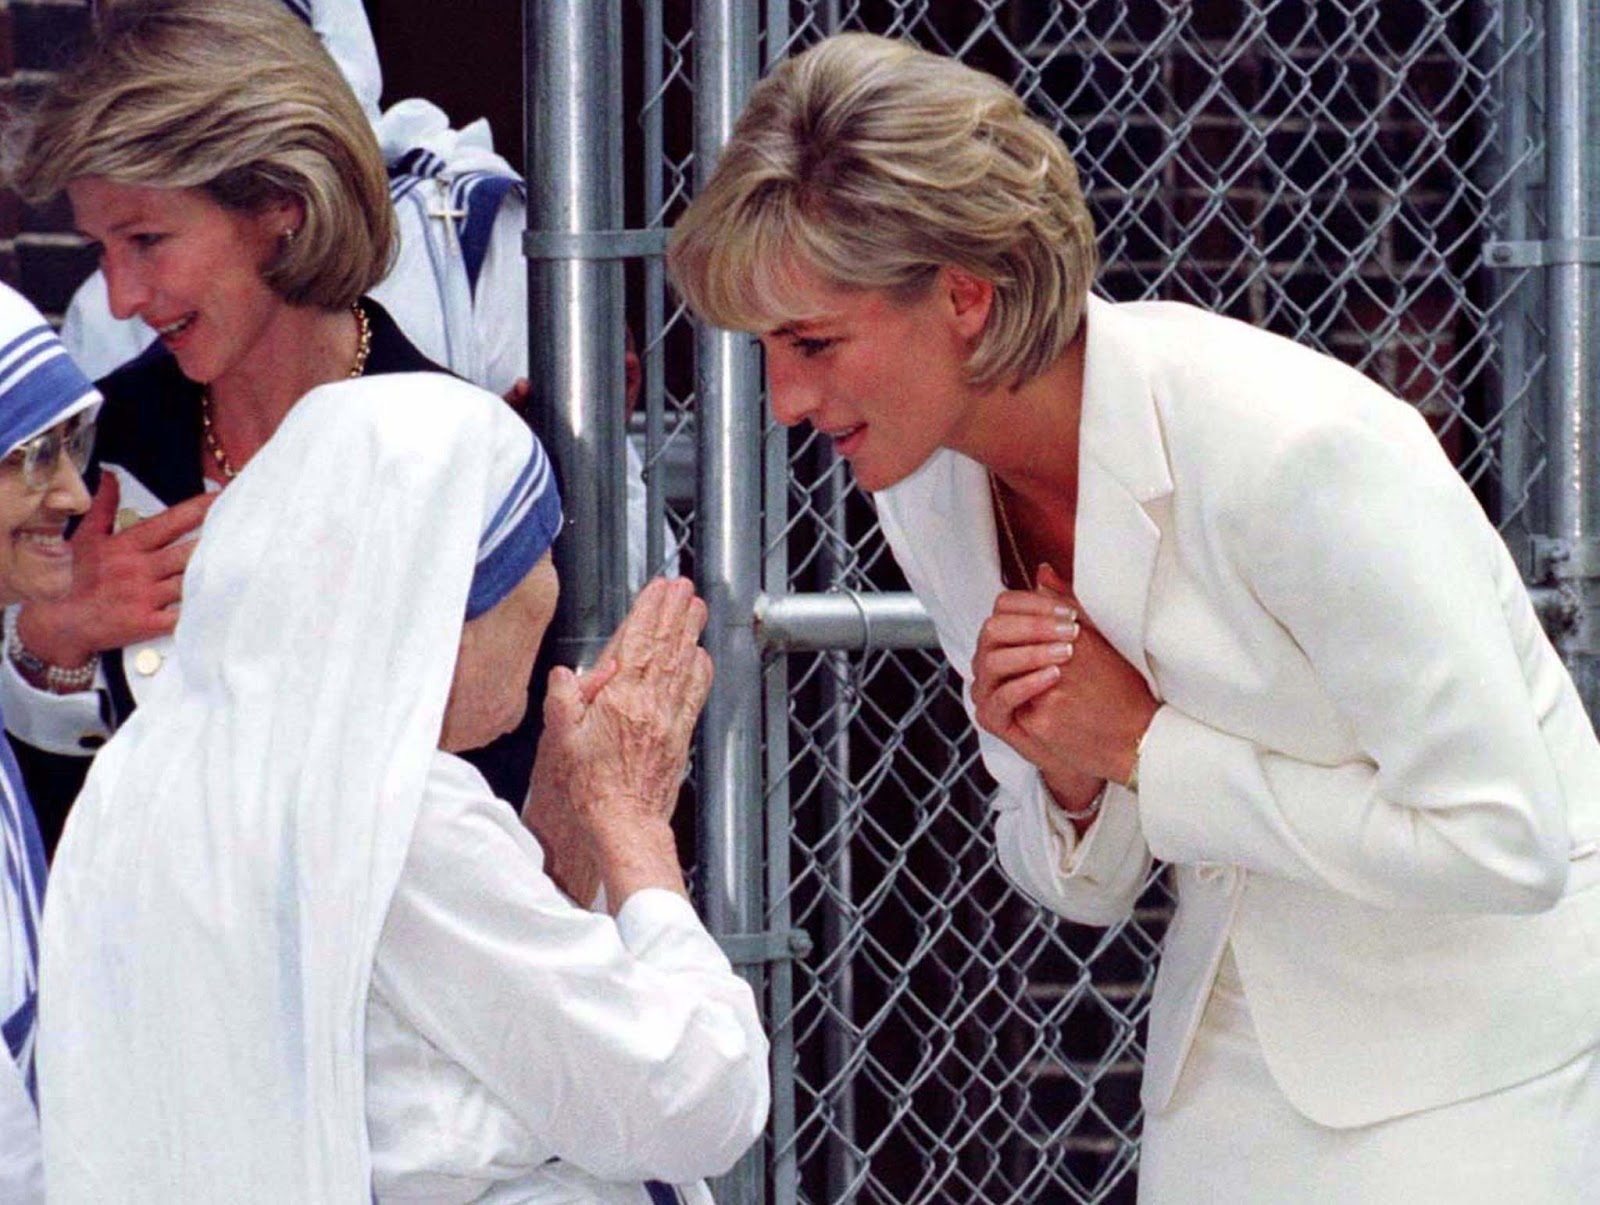 Princess of Wales bows to Mother Teresa in New York, 1997